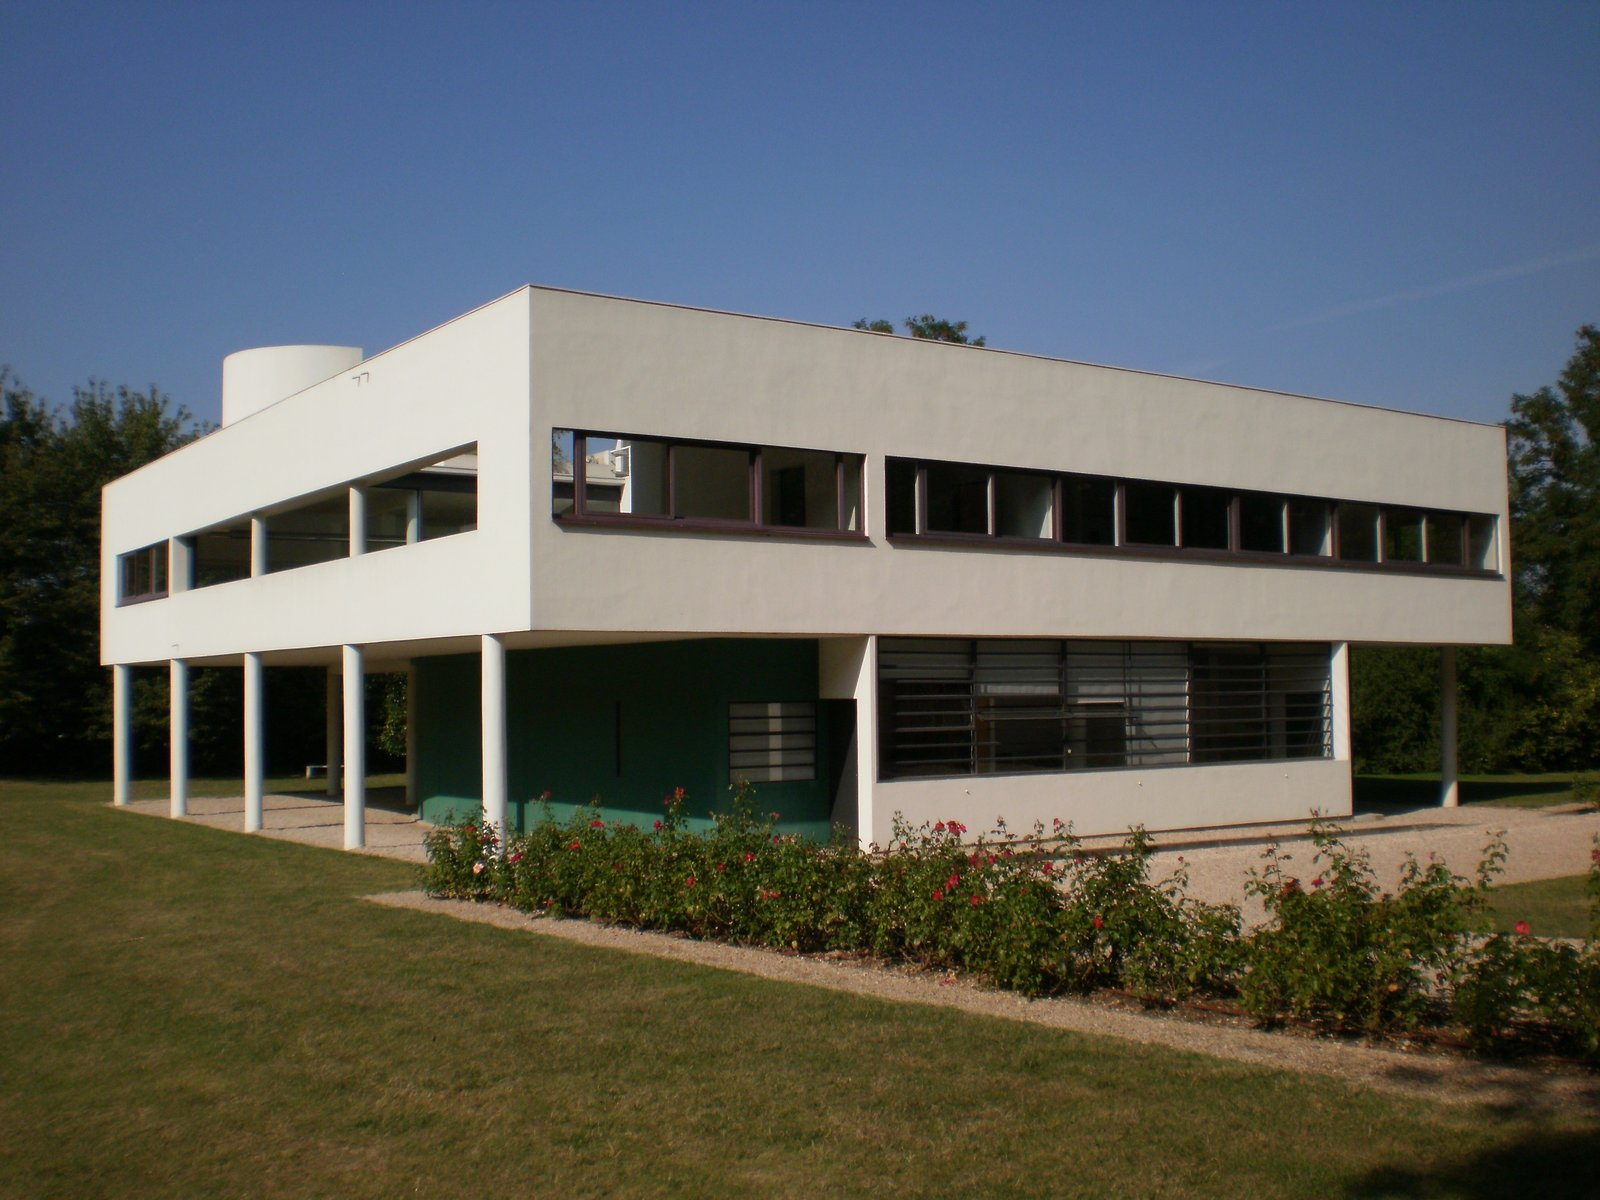 UNESCO Adds 17 Le Corbusier Buildings to Its Storied Ranks